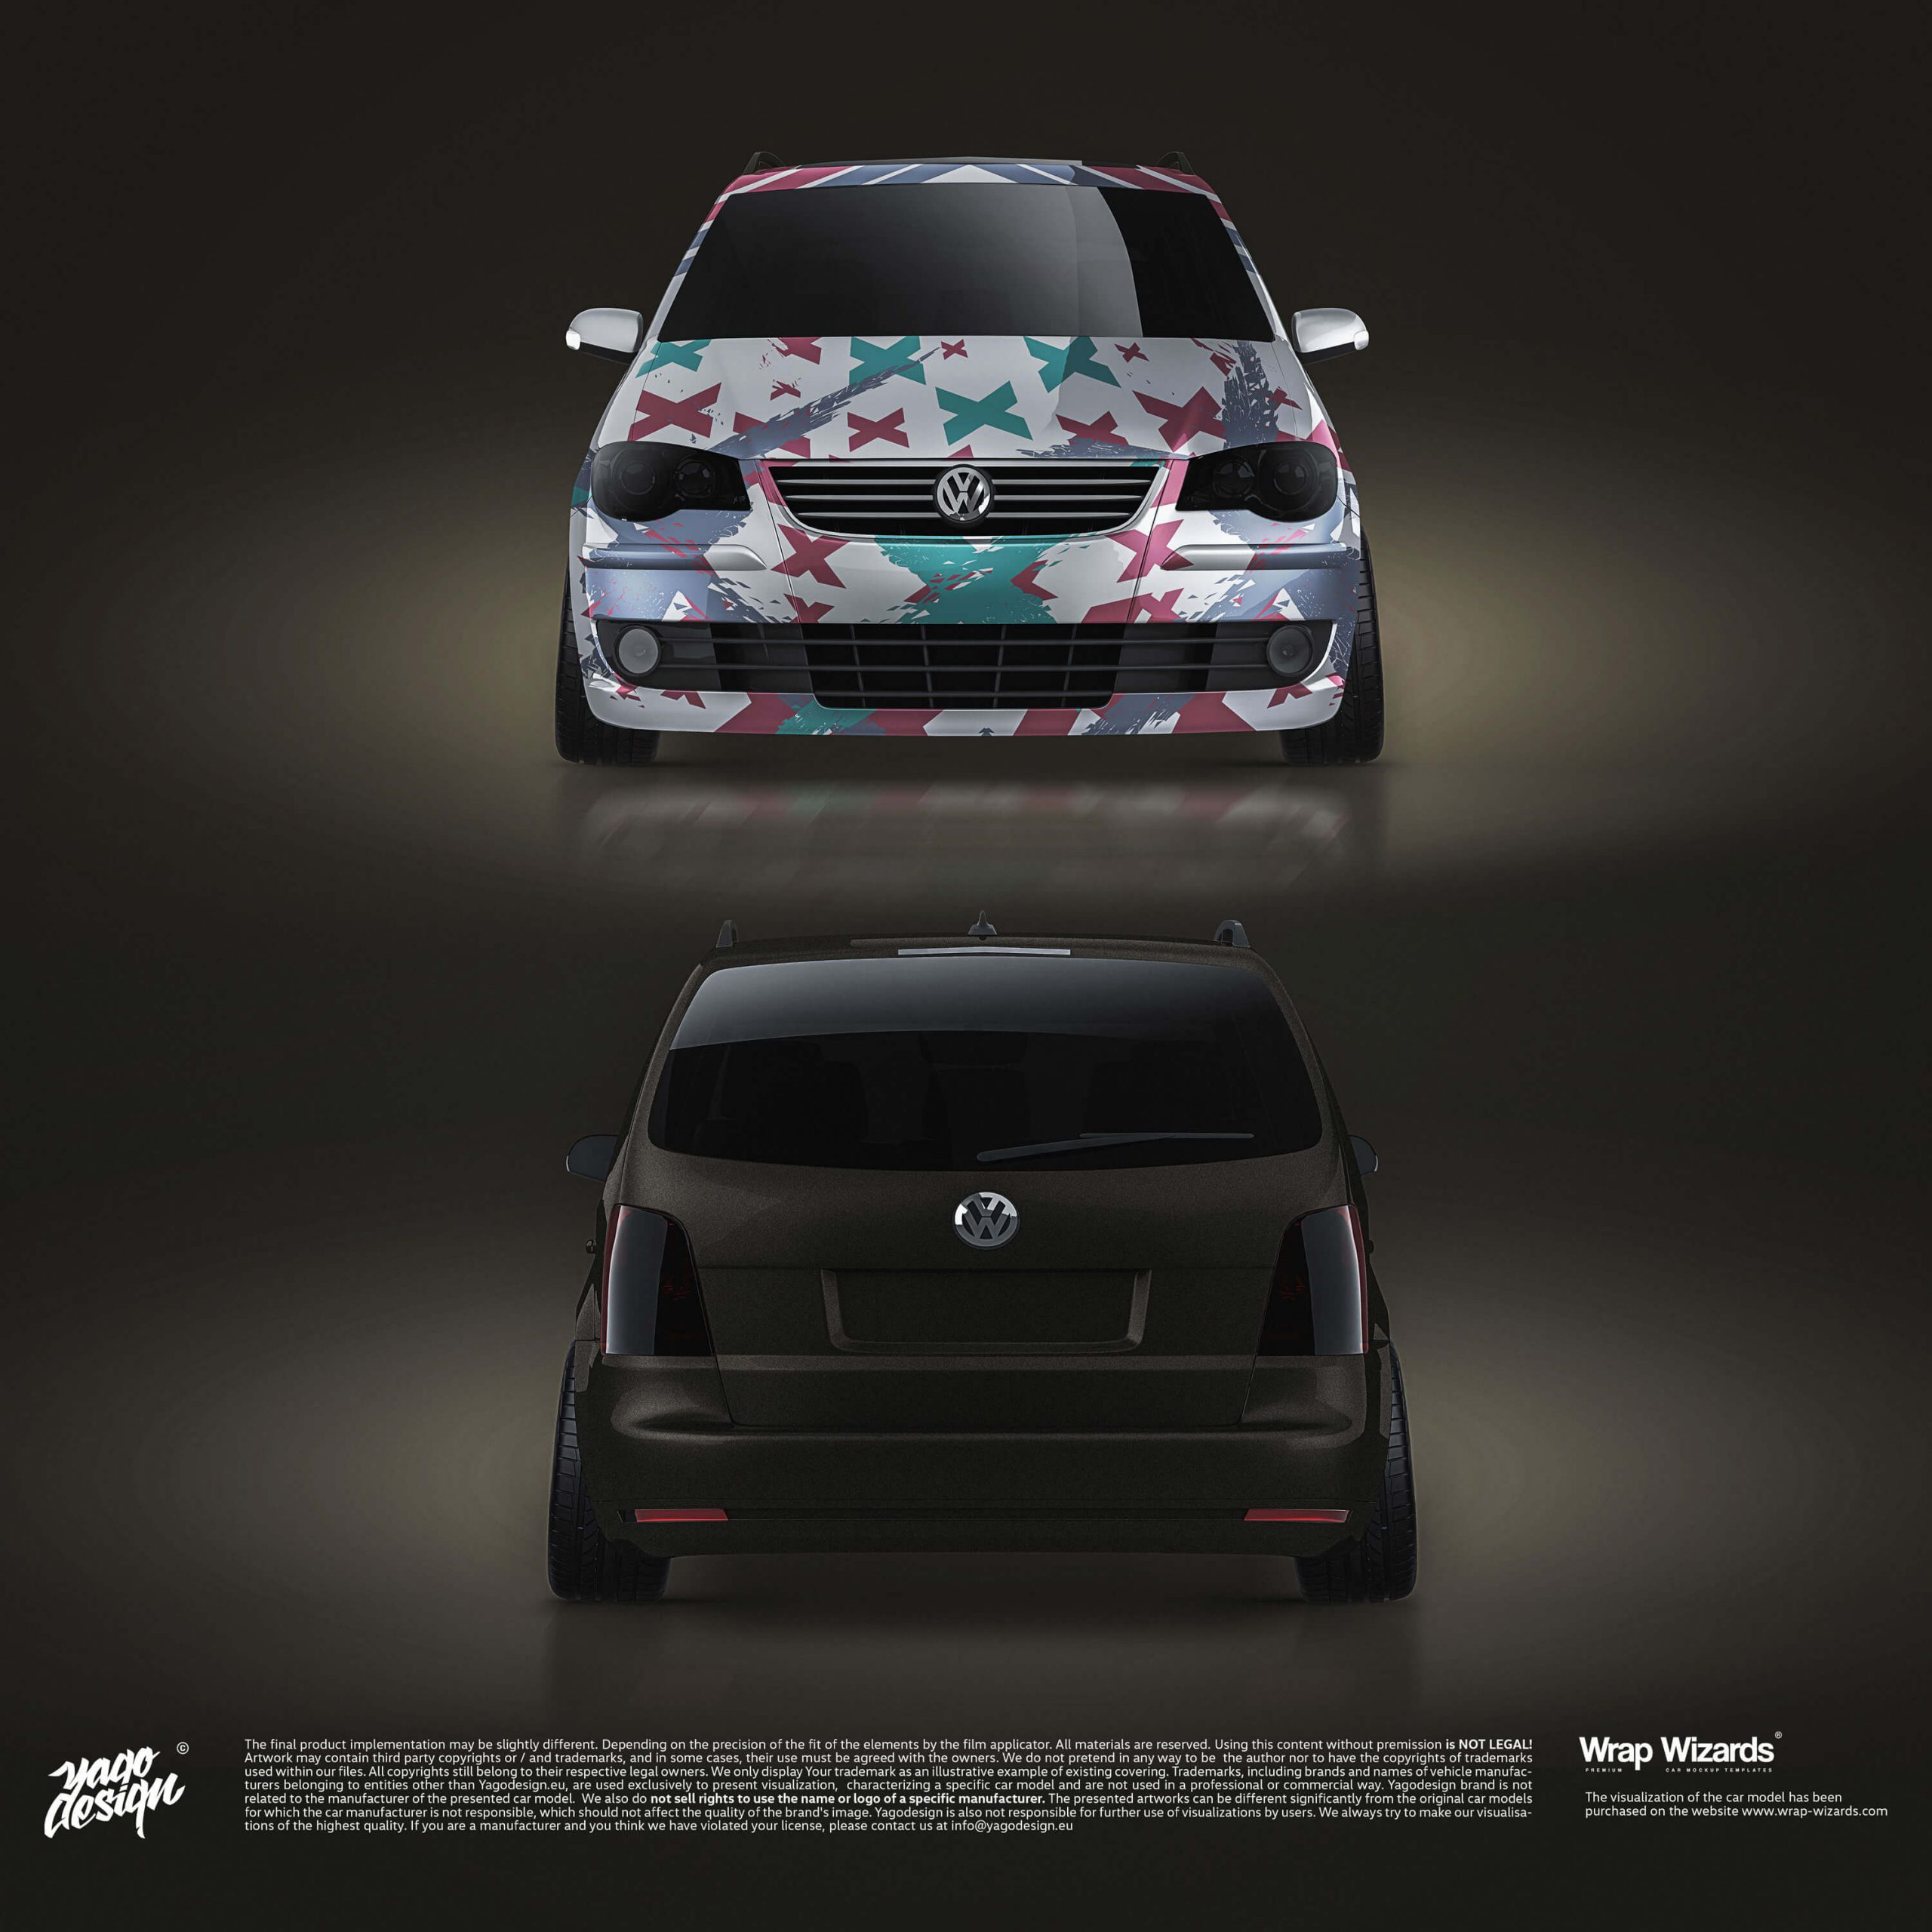 VW-Touran-2007-by-Yagodesign-2020-Car-Wrapping-5